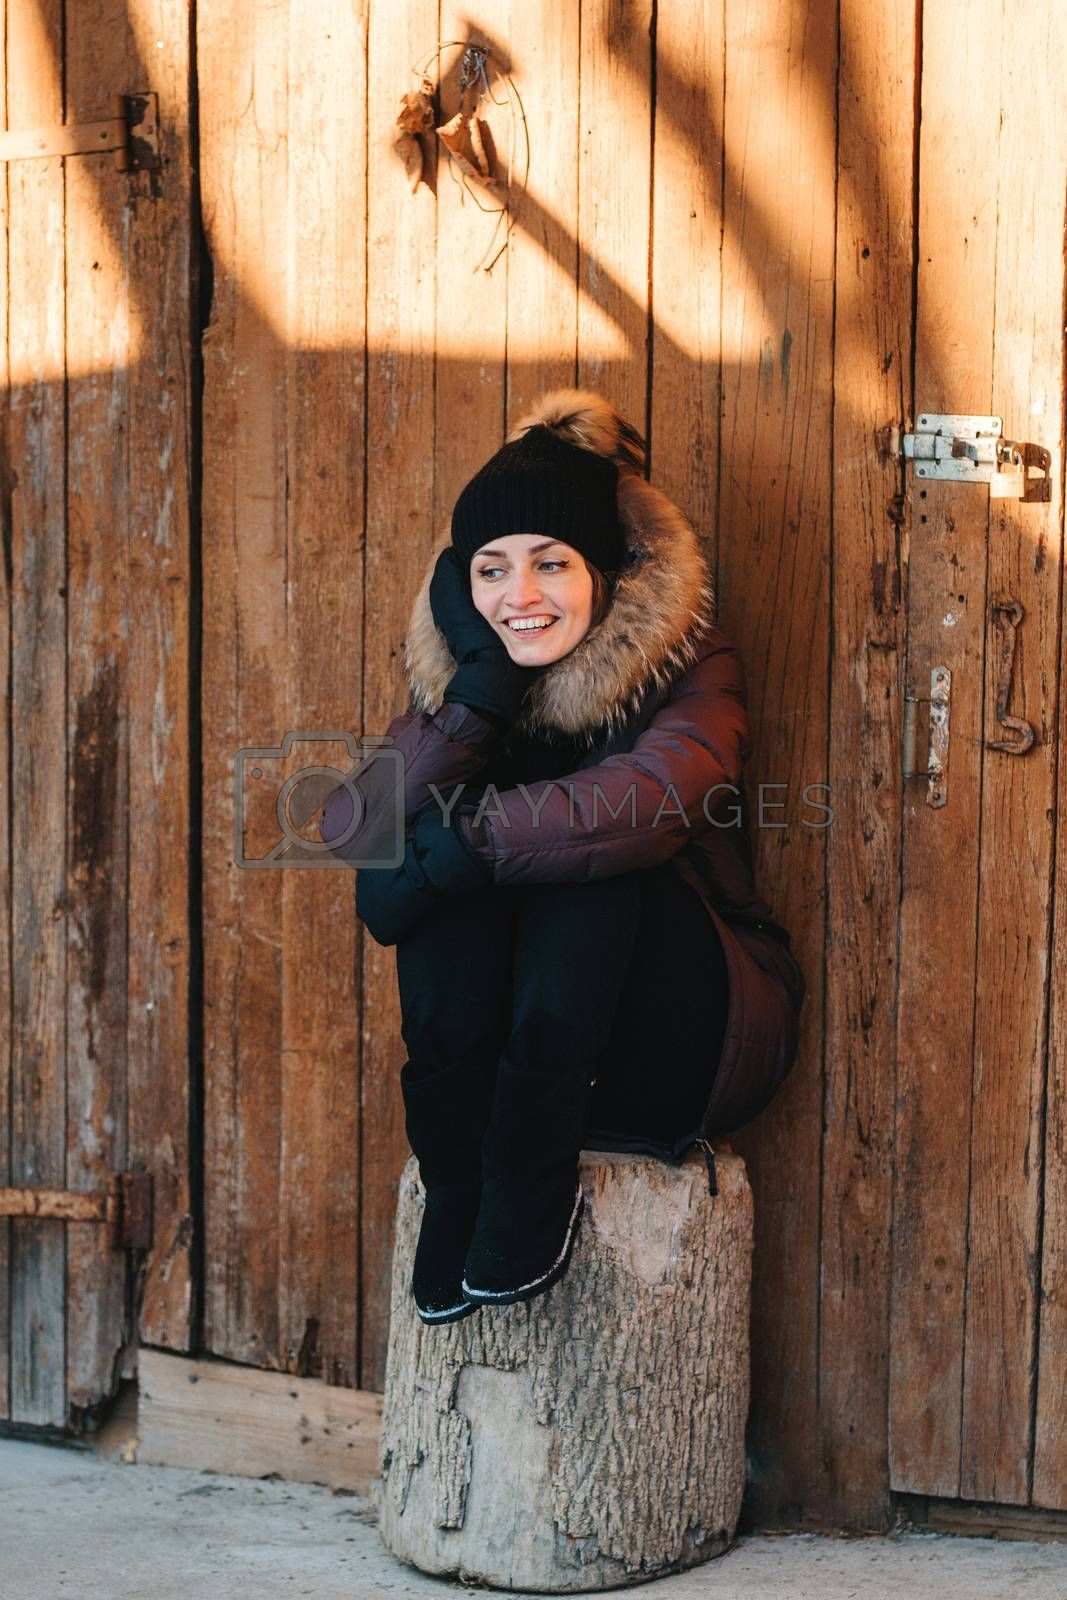 girl looks at a guy who cuts firewood in the yard, covered with snow